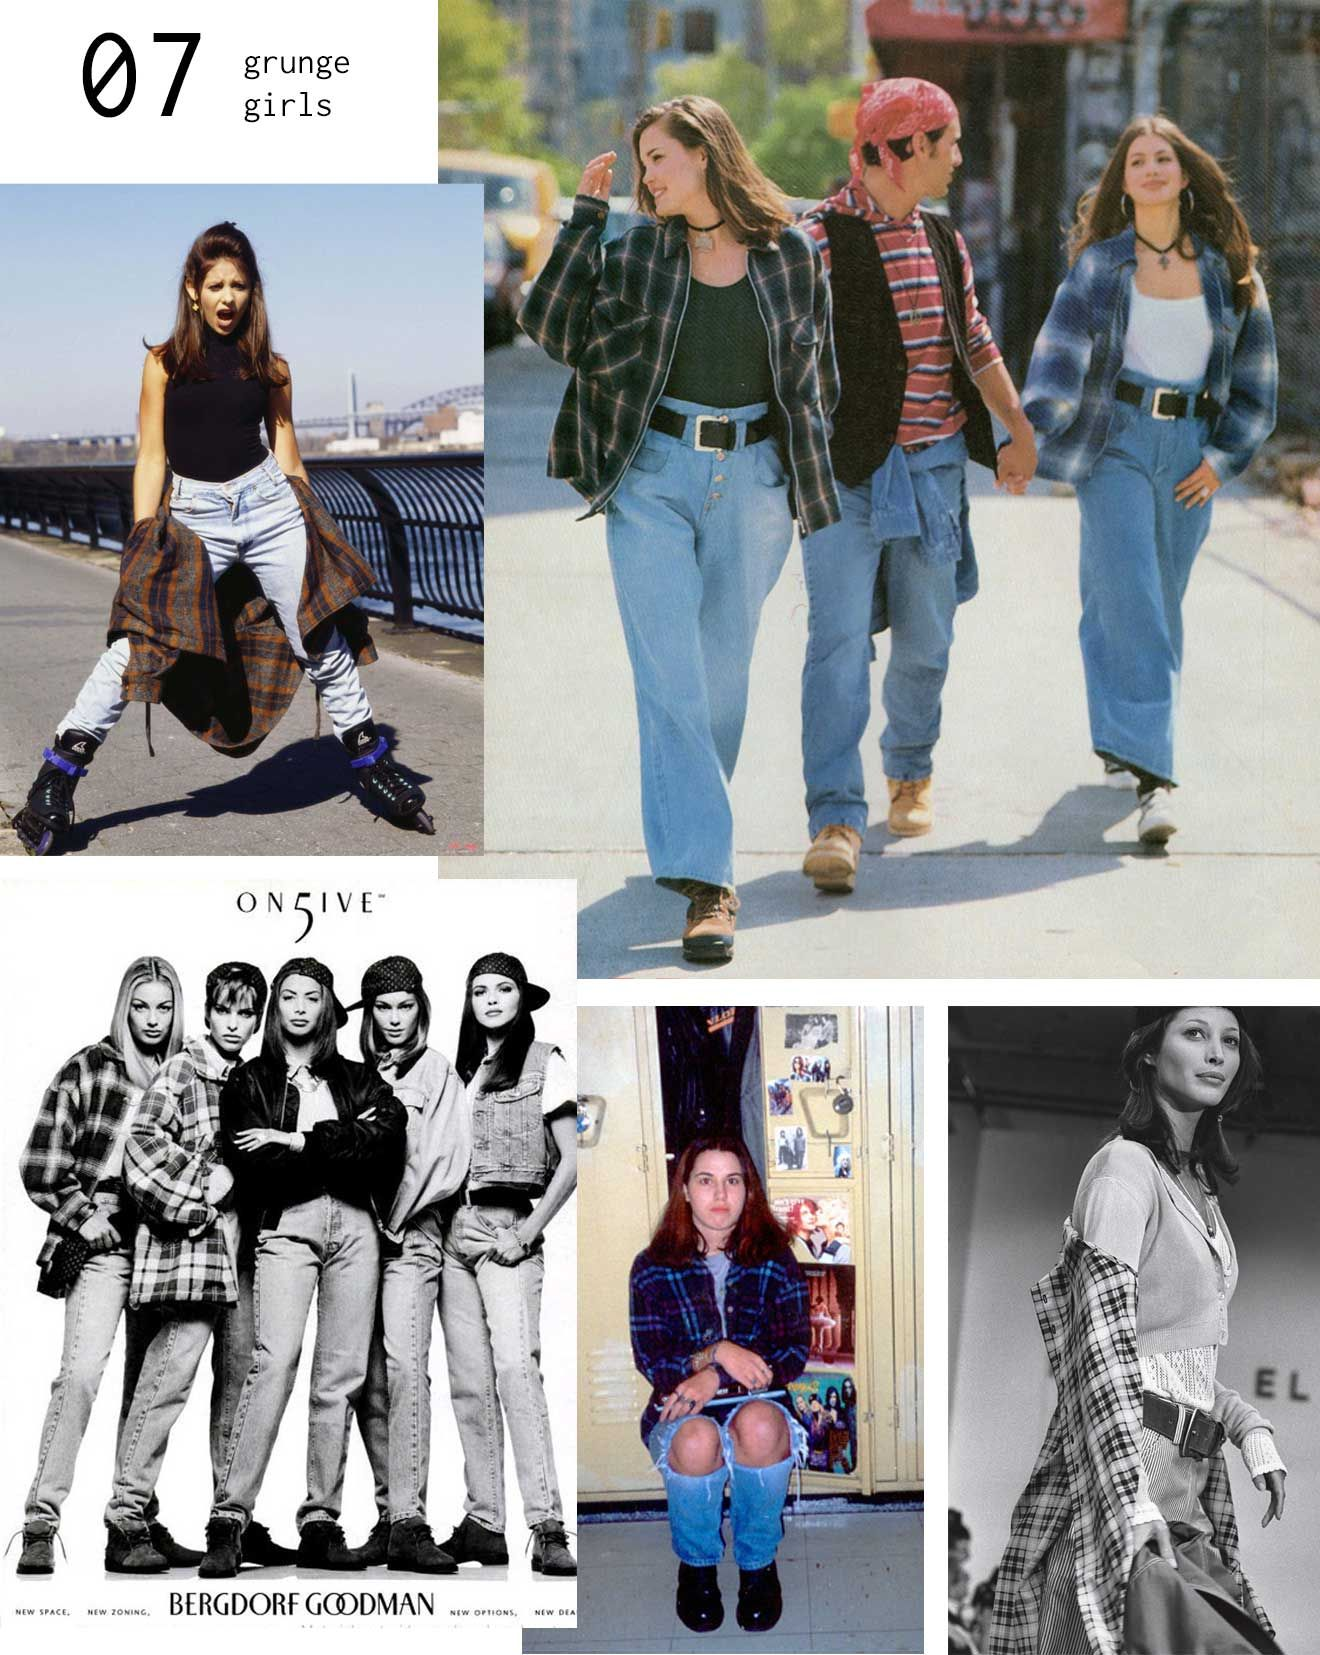 90s outfit for girls